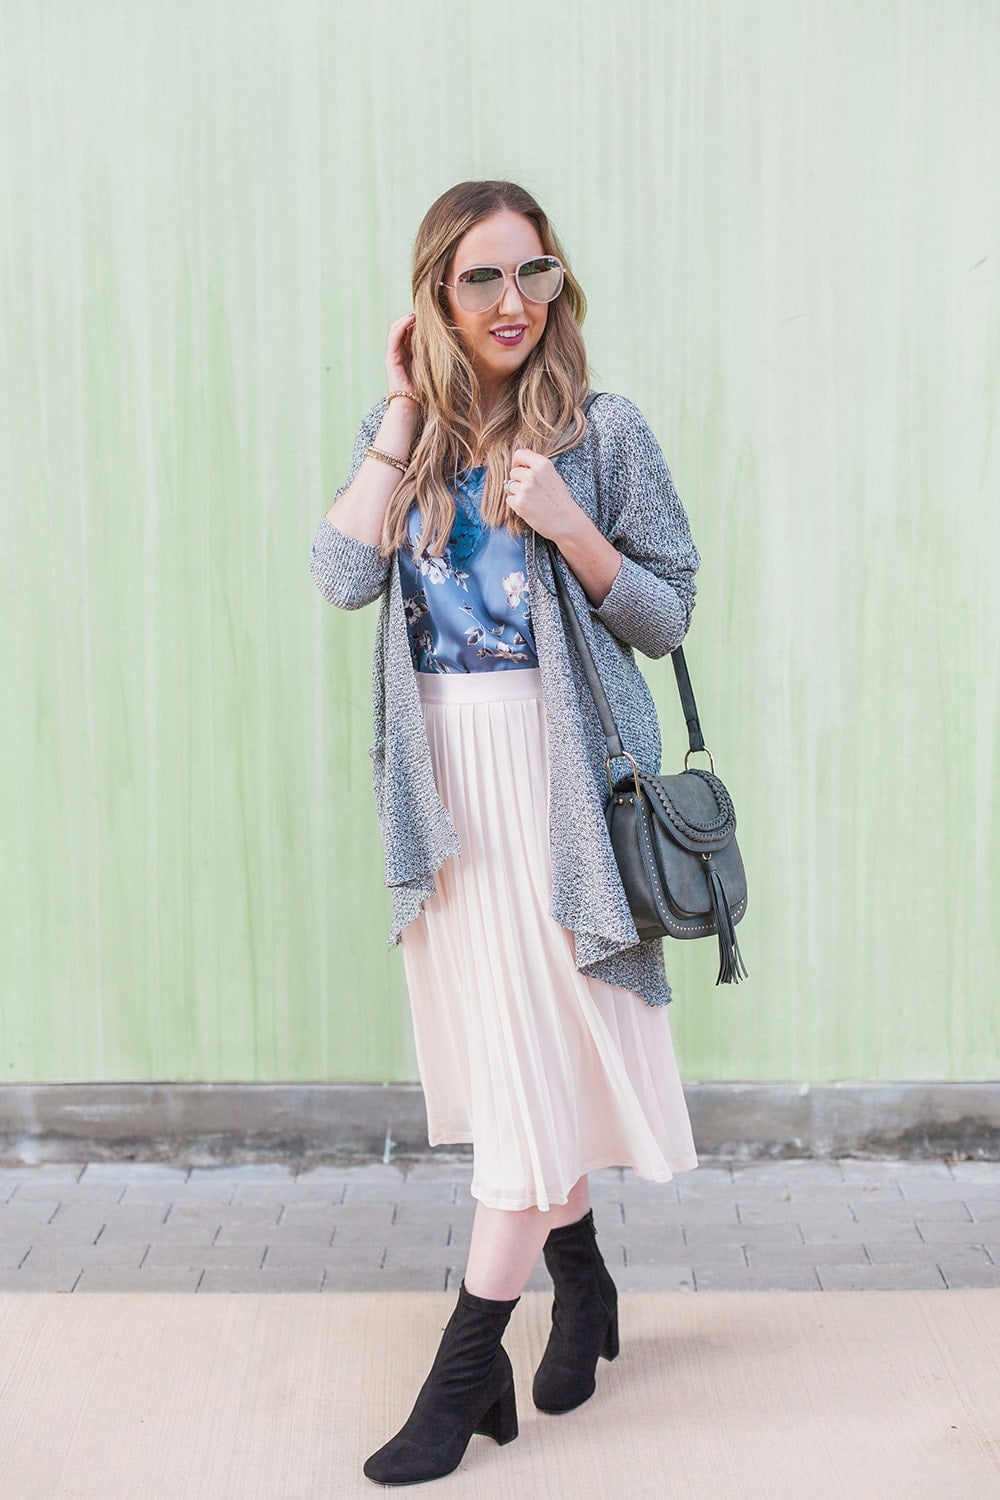 Pleated skirt with floral top, cardigan and boots